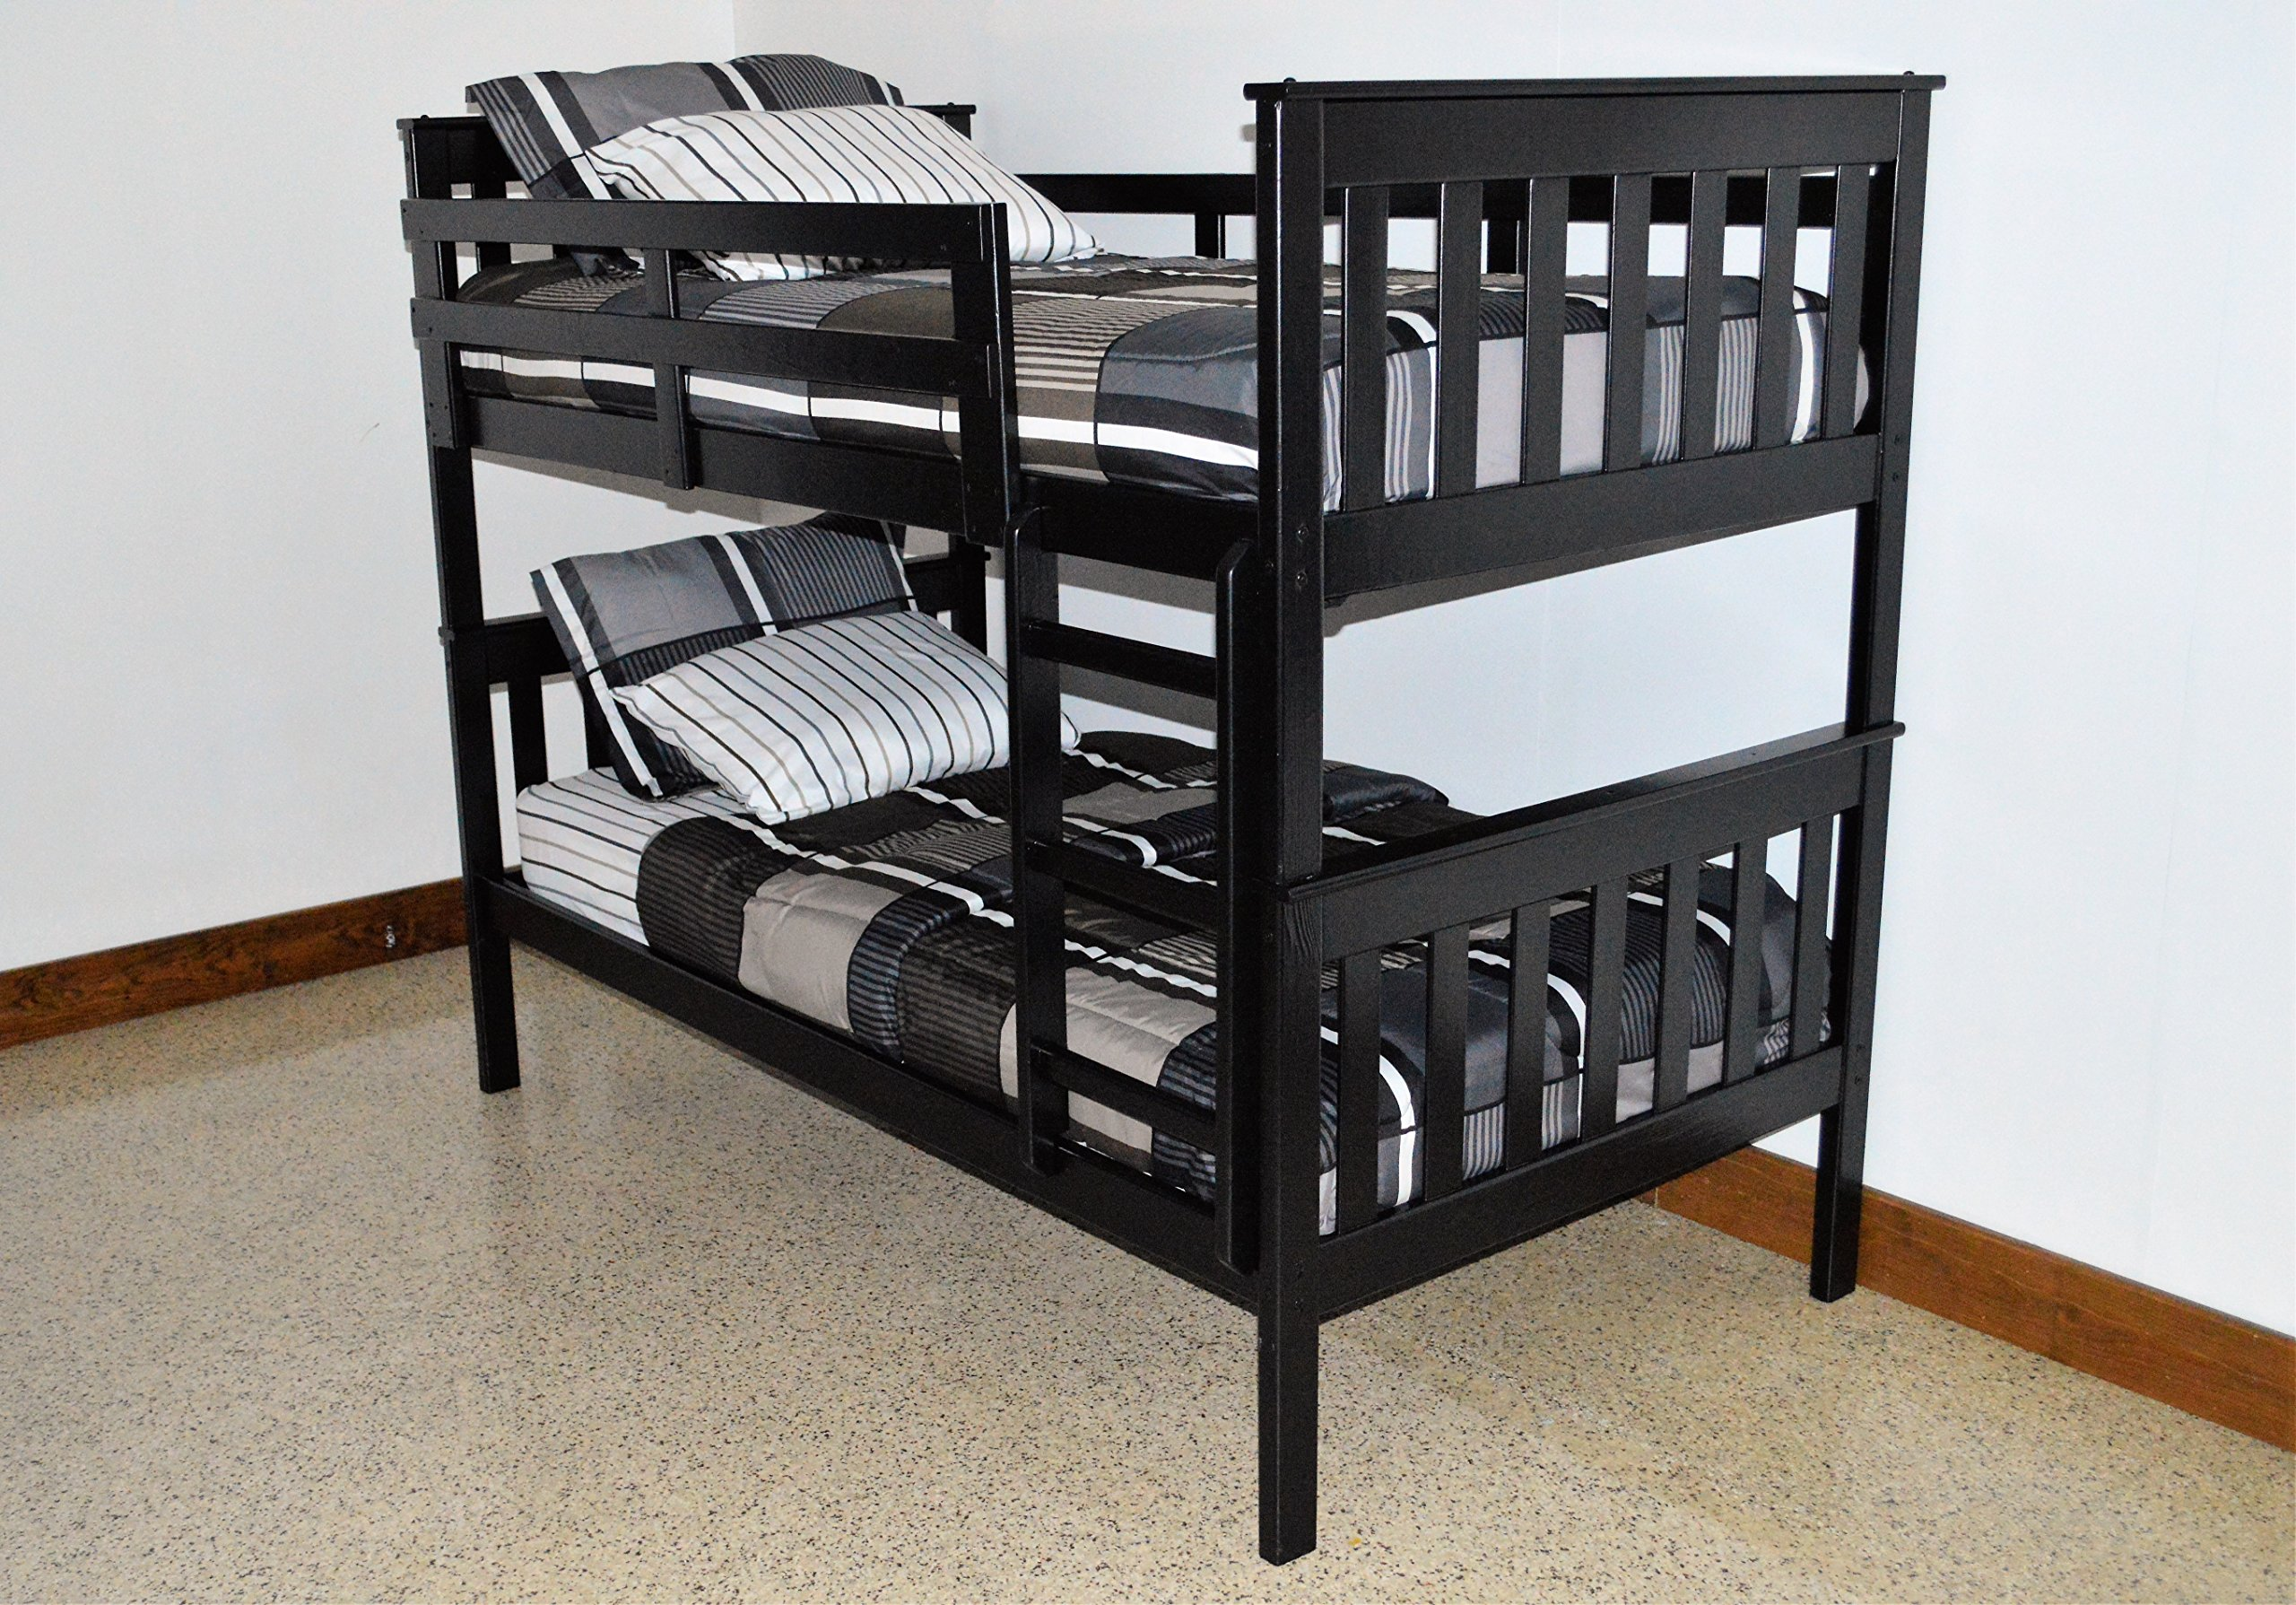 BEST KIDS BUNK BEDS WITH LADDER, Mission Twin Over Twin Bed Bunkbeds | Quality USA Amish Made | Boy And Girl Gender Neutral Bedroom Furniture | Black